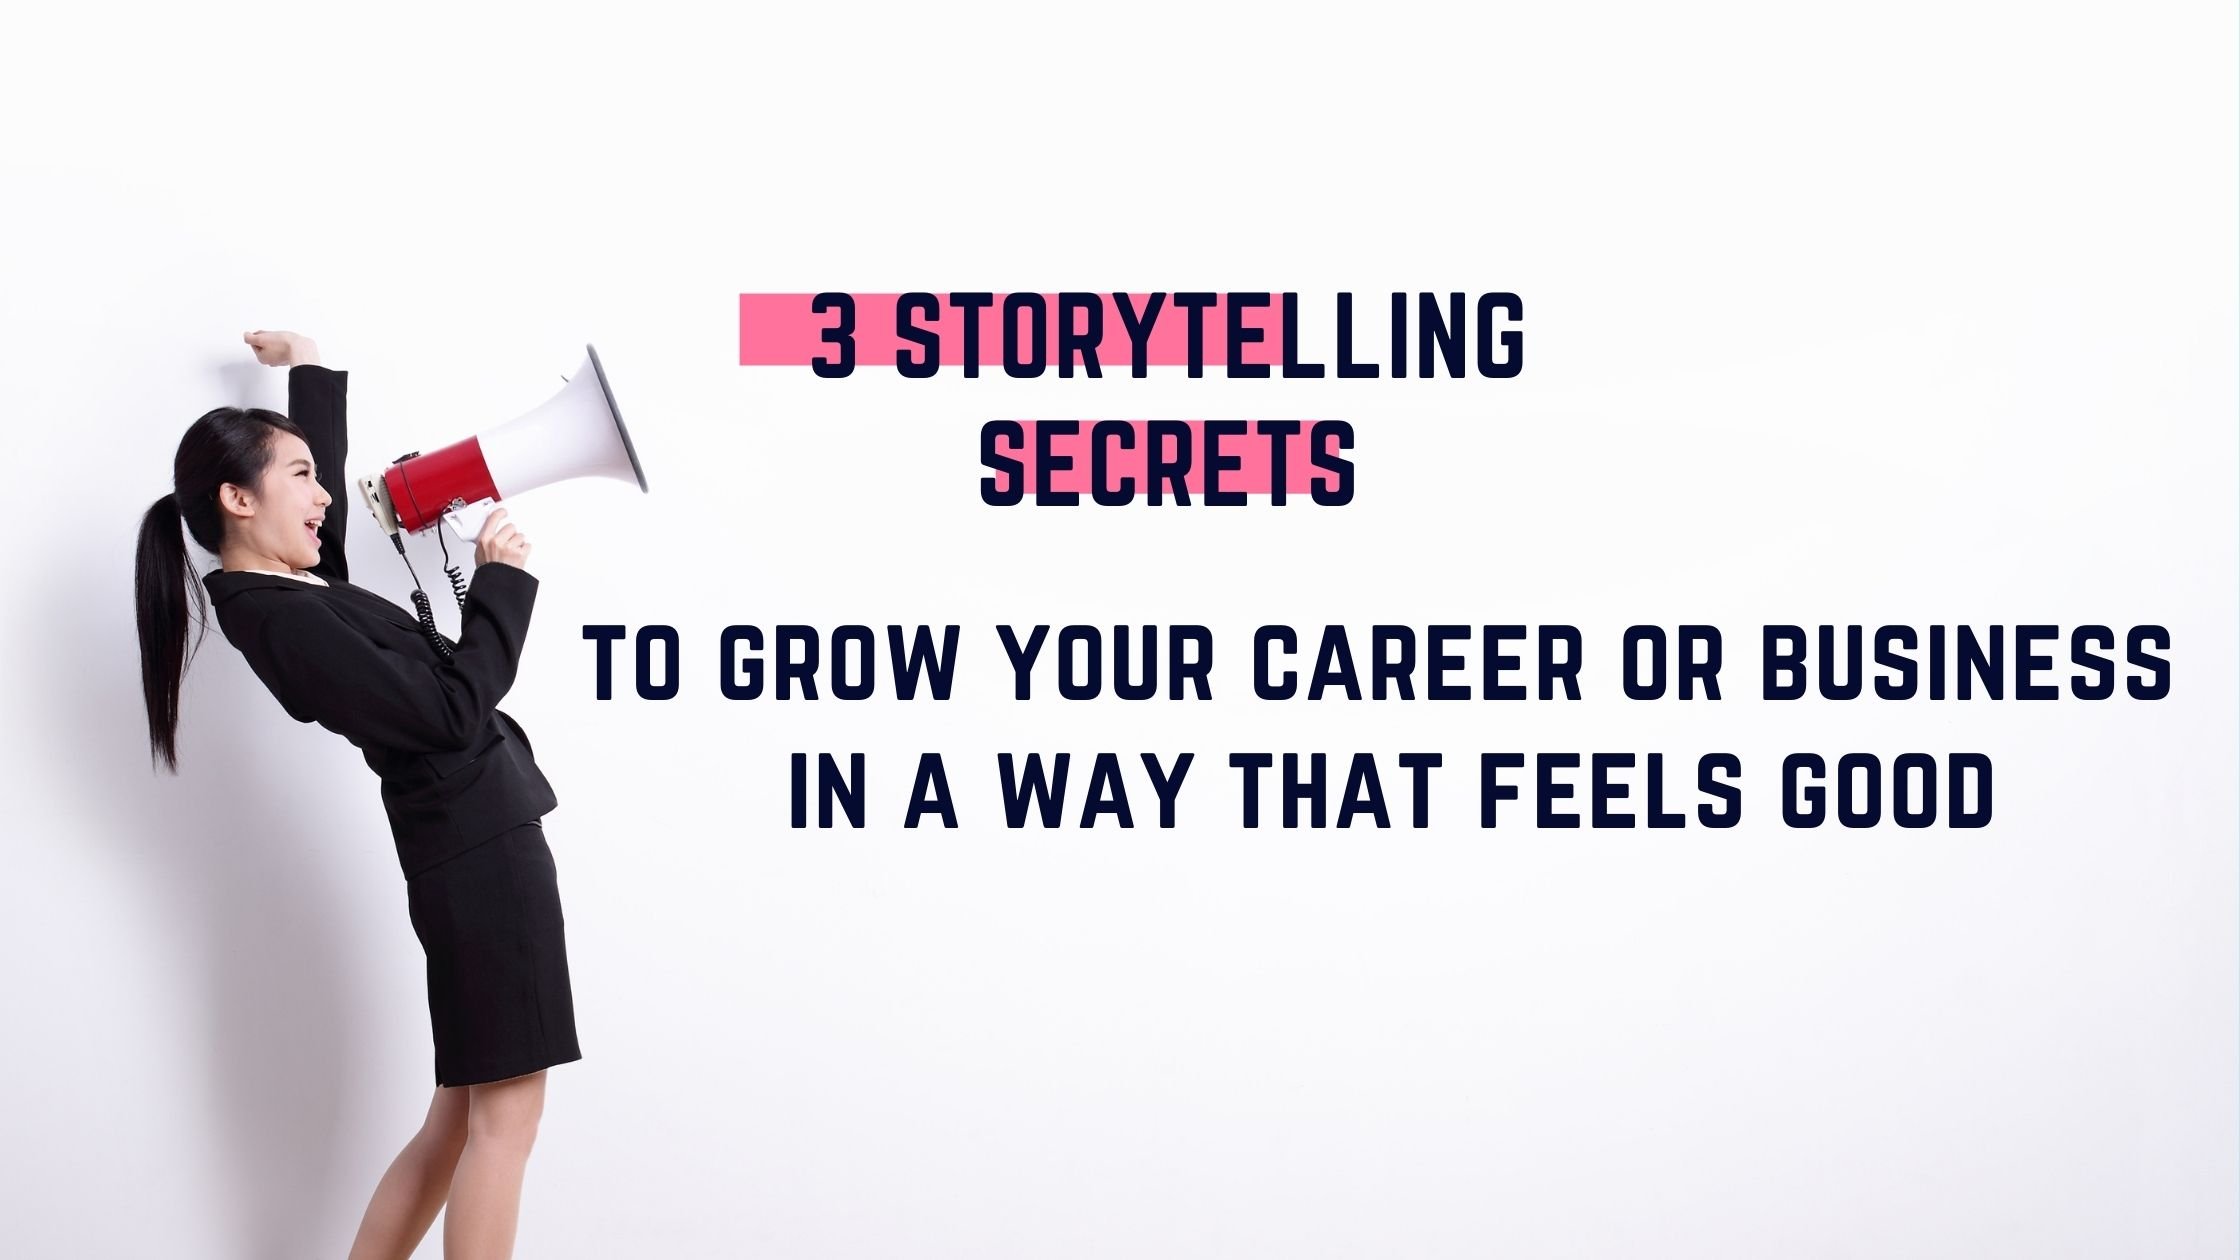 3 Storytelling Secrets To Grow Your Career or Business in a Way That Feels Good